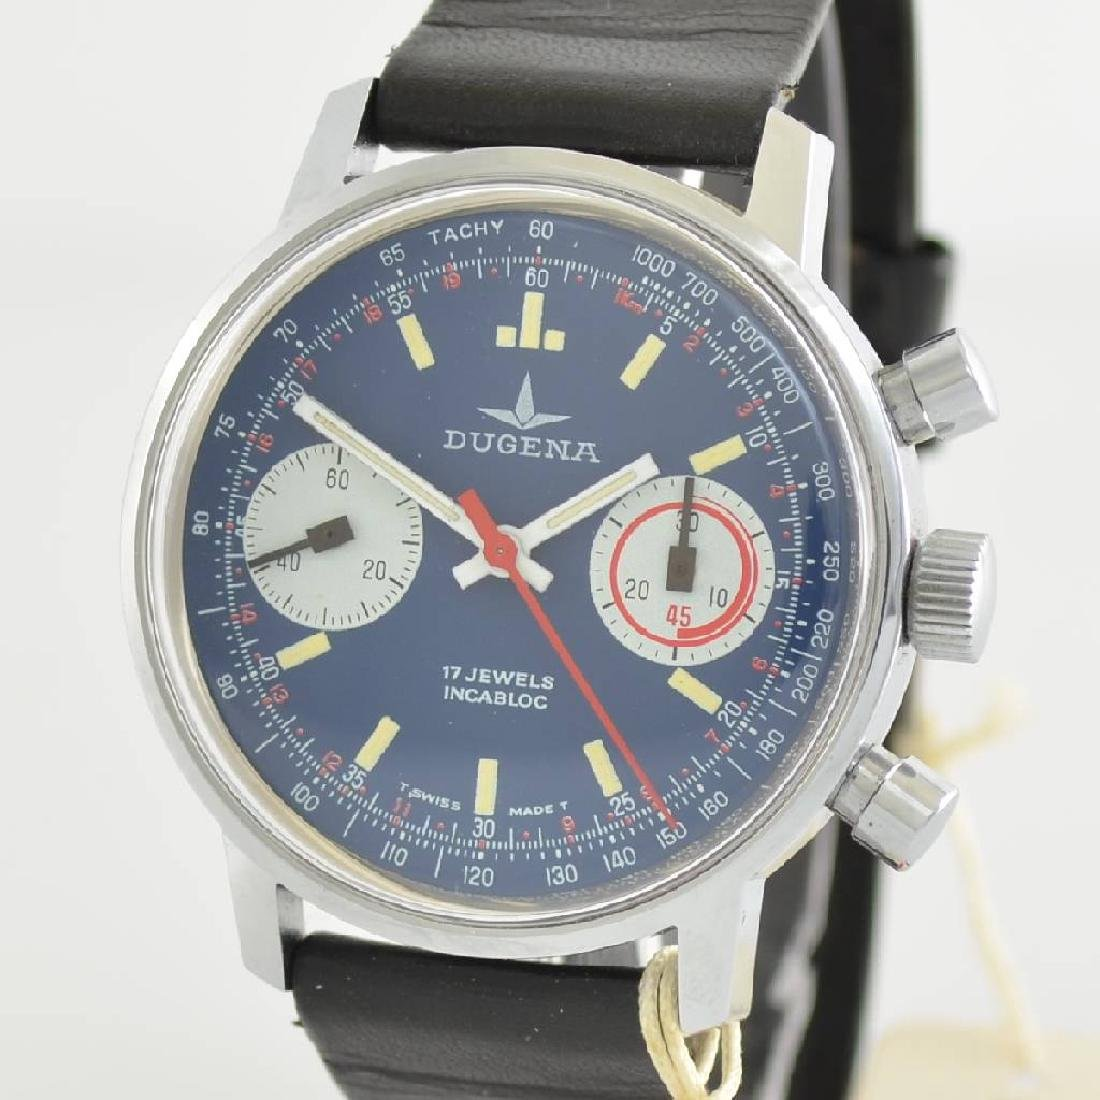 DUGENA unworn gents wristwatch with chronograph - 4